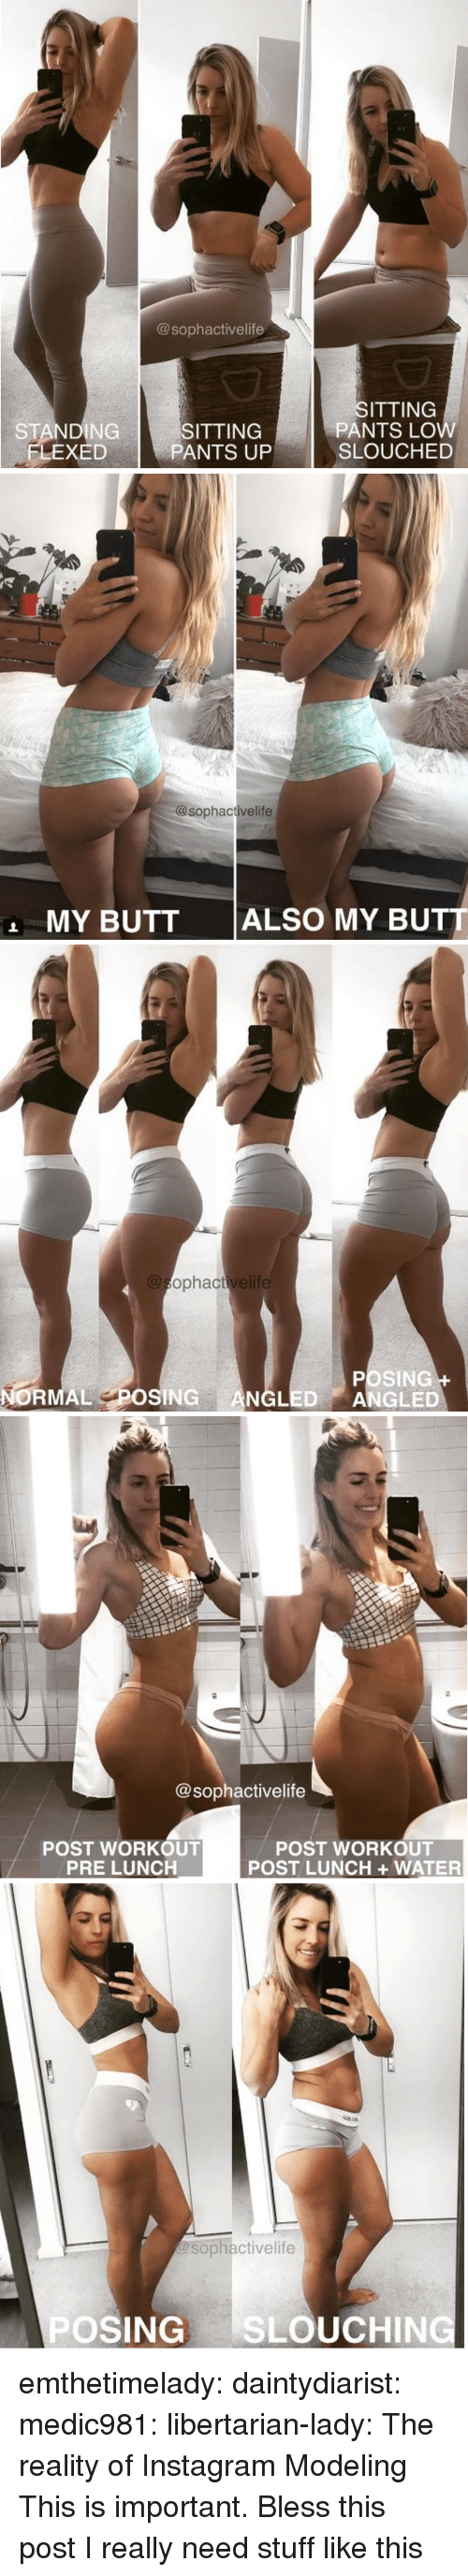 Butt, Instagram, and Tumblr: 82  @sophactivelife  STANDING  ELEXED  SITTING  PANTS UP  SITTING  PANTS LOW  SLOUCHED   @sophactivelife  MY BUTT ALSO MY BUT   ophact  POSING  NORMAL POSING GLED ANGLED   @sophactivelife  POST WORKOUT  PRE LUNCH  POST WORKOUT  POST LUNCH +WATER   ctivelife  POSING SLOUCHIN emthetimelady: daintydiarist:   medic981:  libertarian-lady:  The reality of Instagram Modeling  This is important.   Bless this post   I really need stuff like this